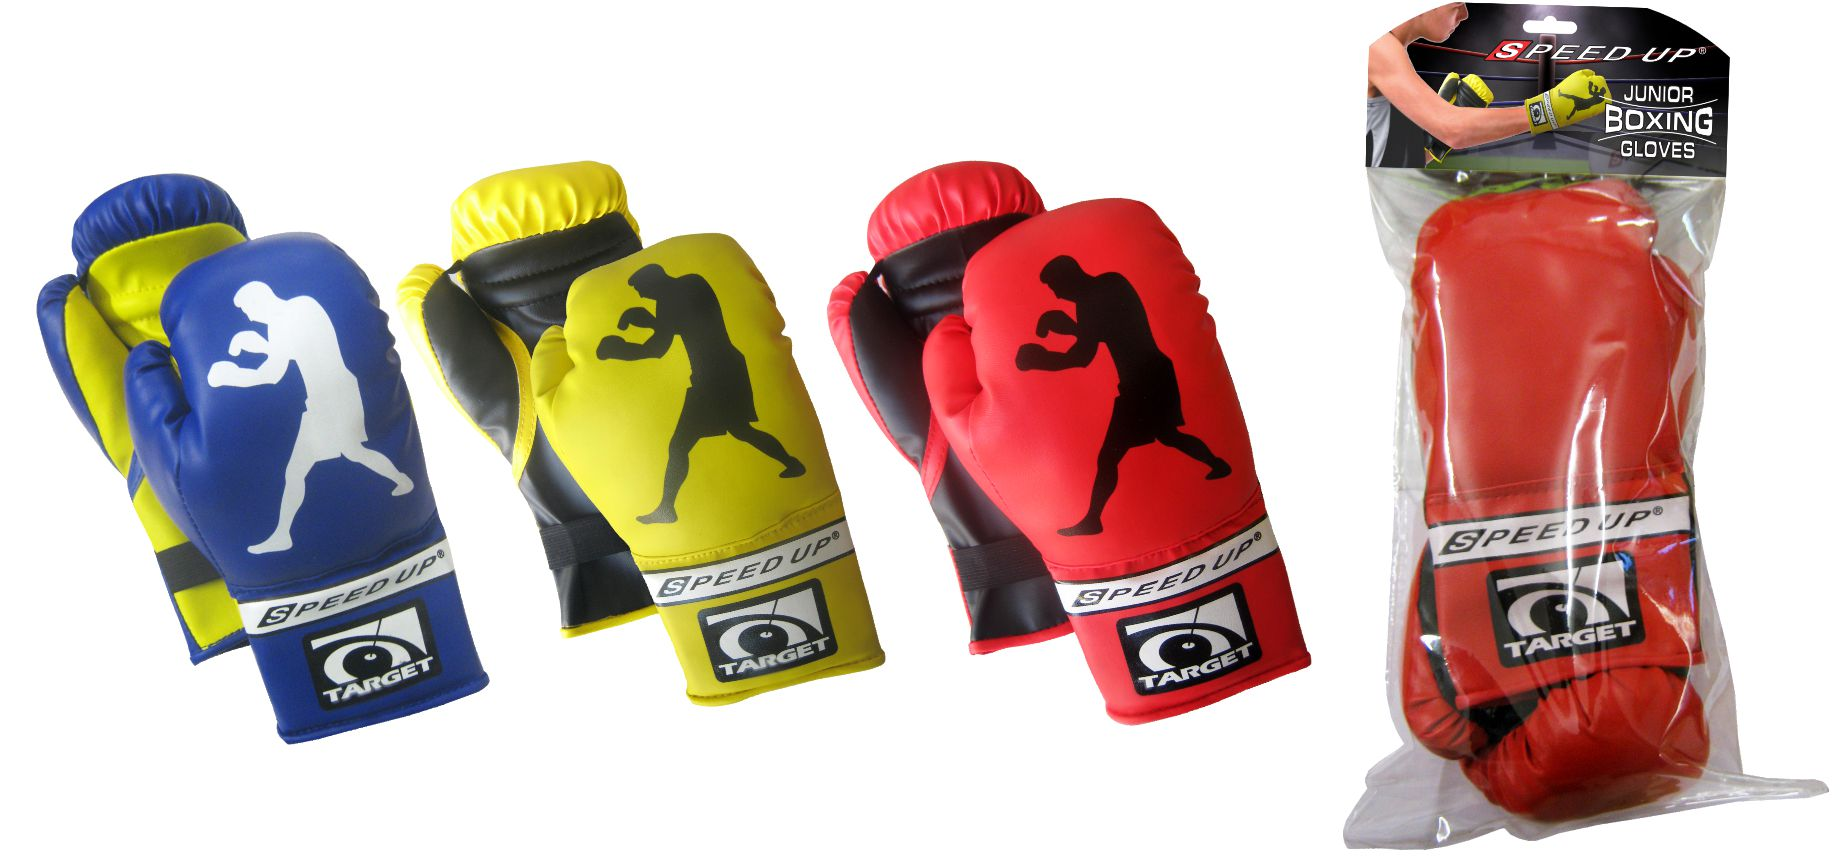 2841 JUNIOR BOXING GLOVES SET